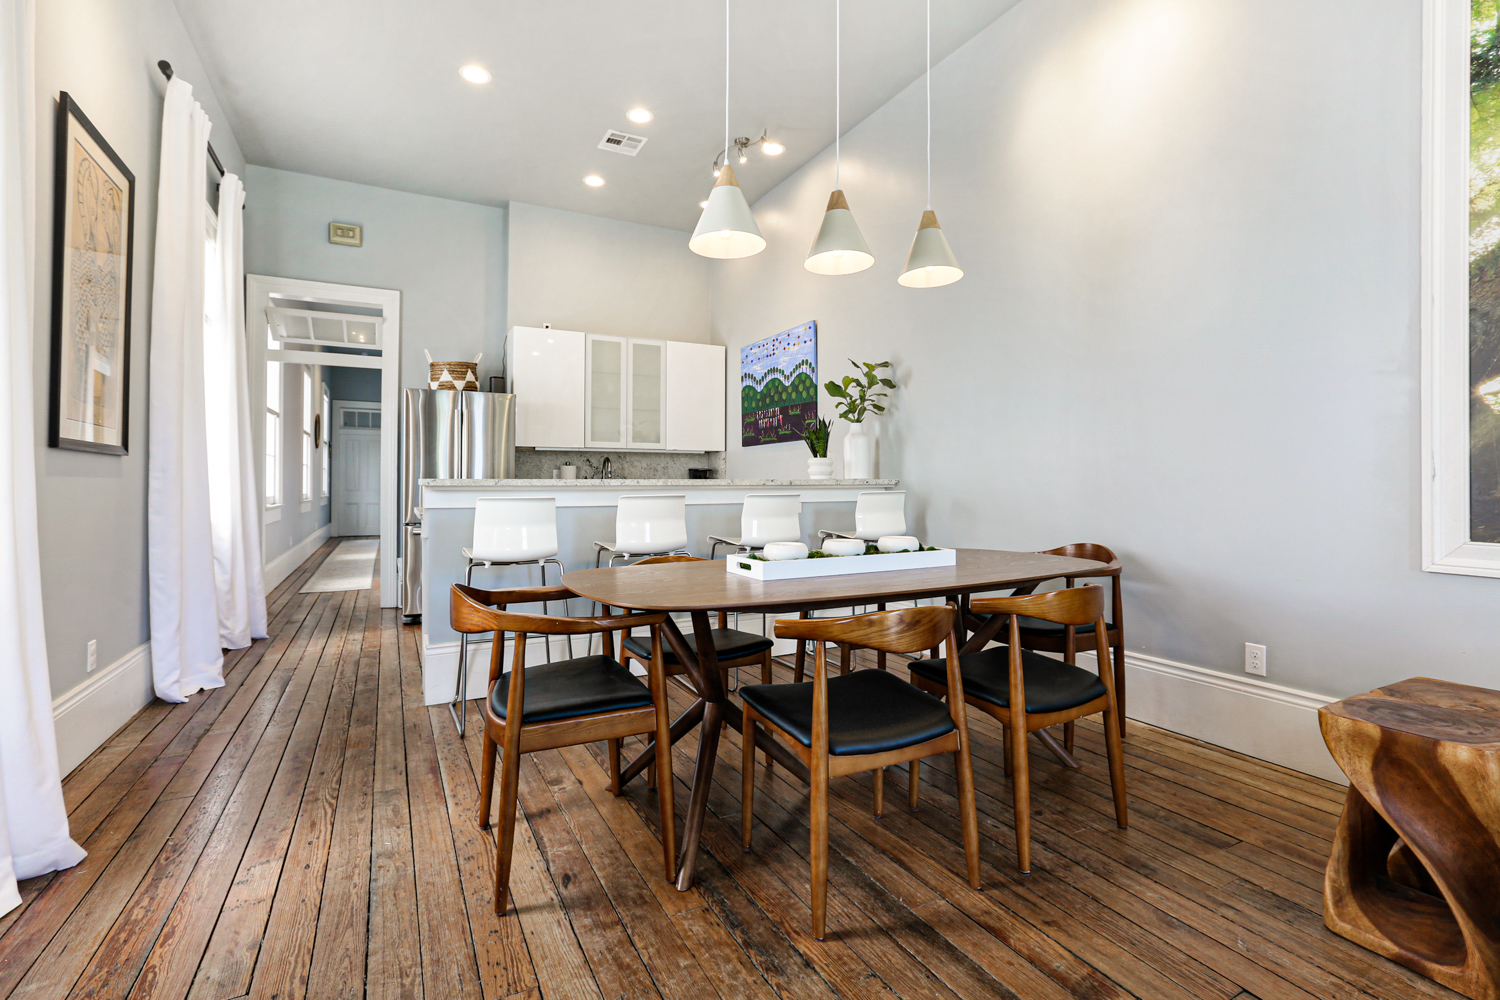 Uptown, Apartment, 2 beds, 2.0 baths, $4000 per month New Orleans Rental - devie image_8